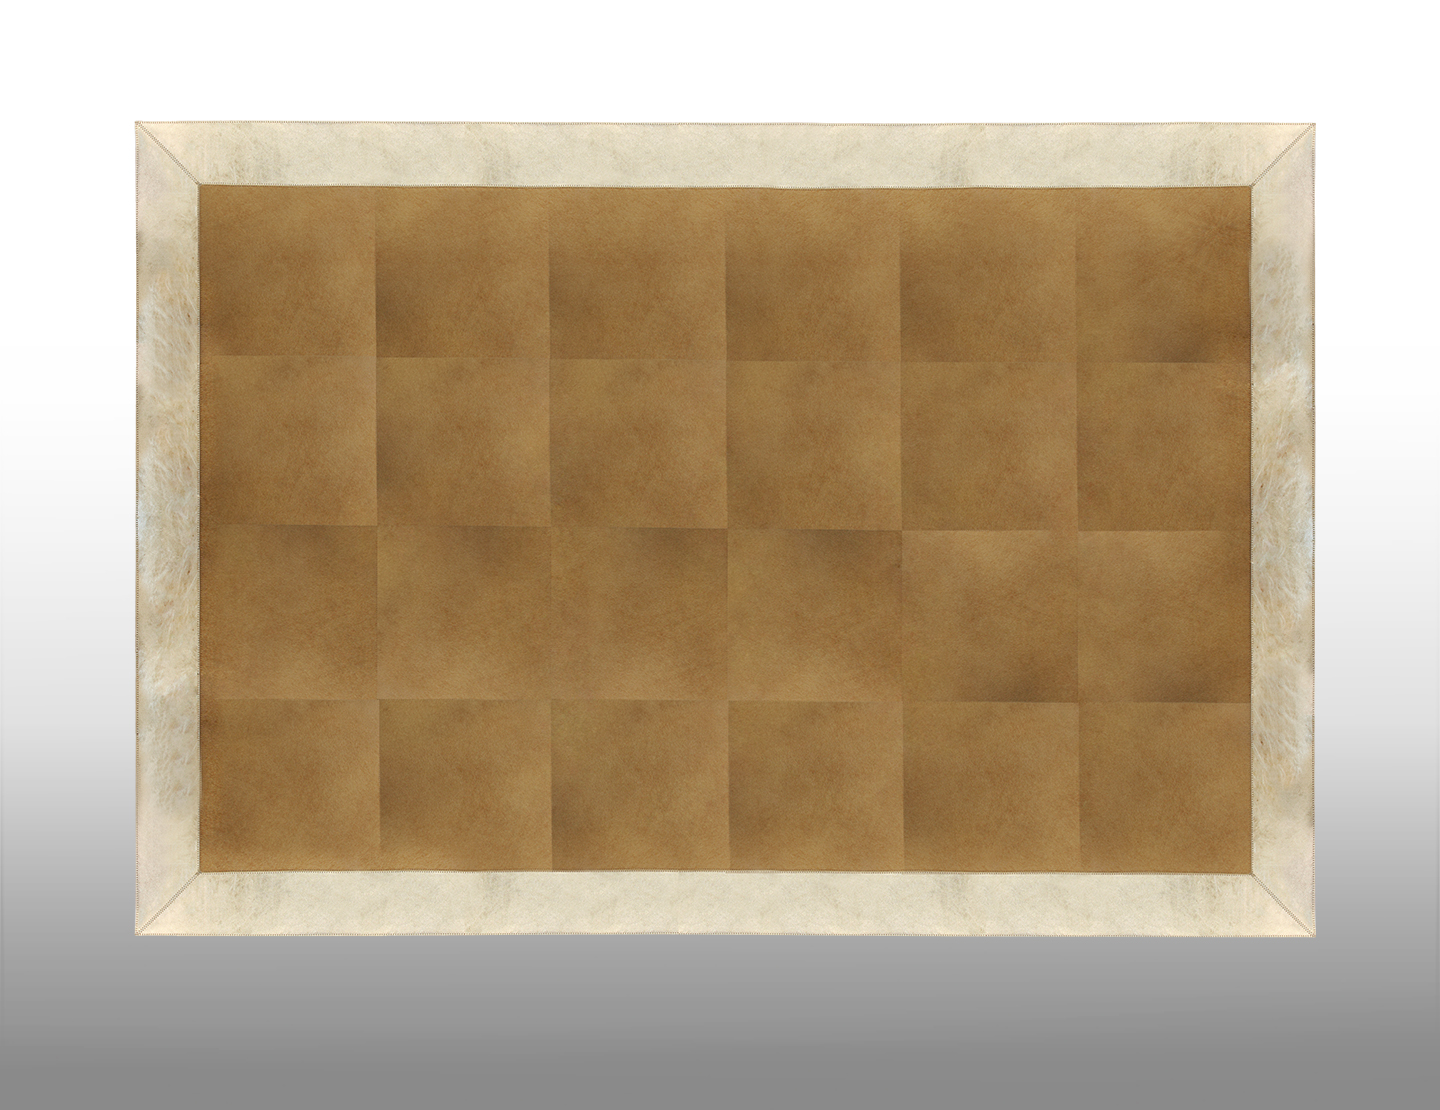 contemporary rugs 10 Contemporary Rugs that will Delight You 10 Contemporary Rugs that will Delight You2